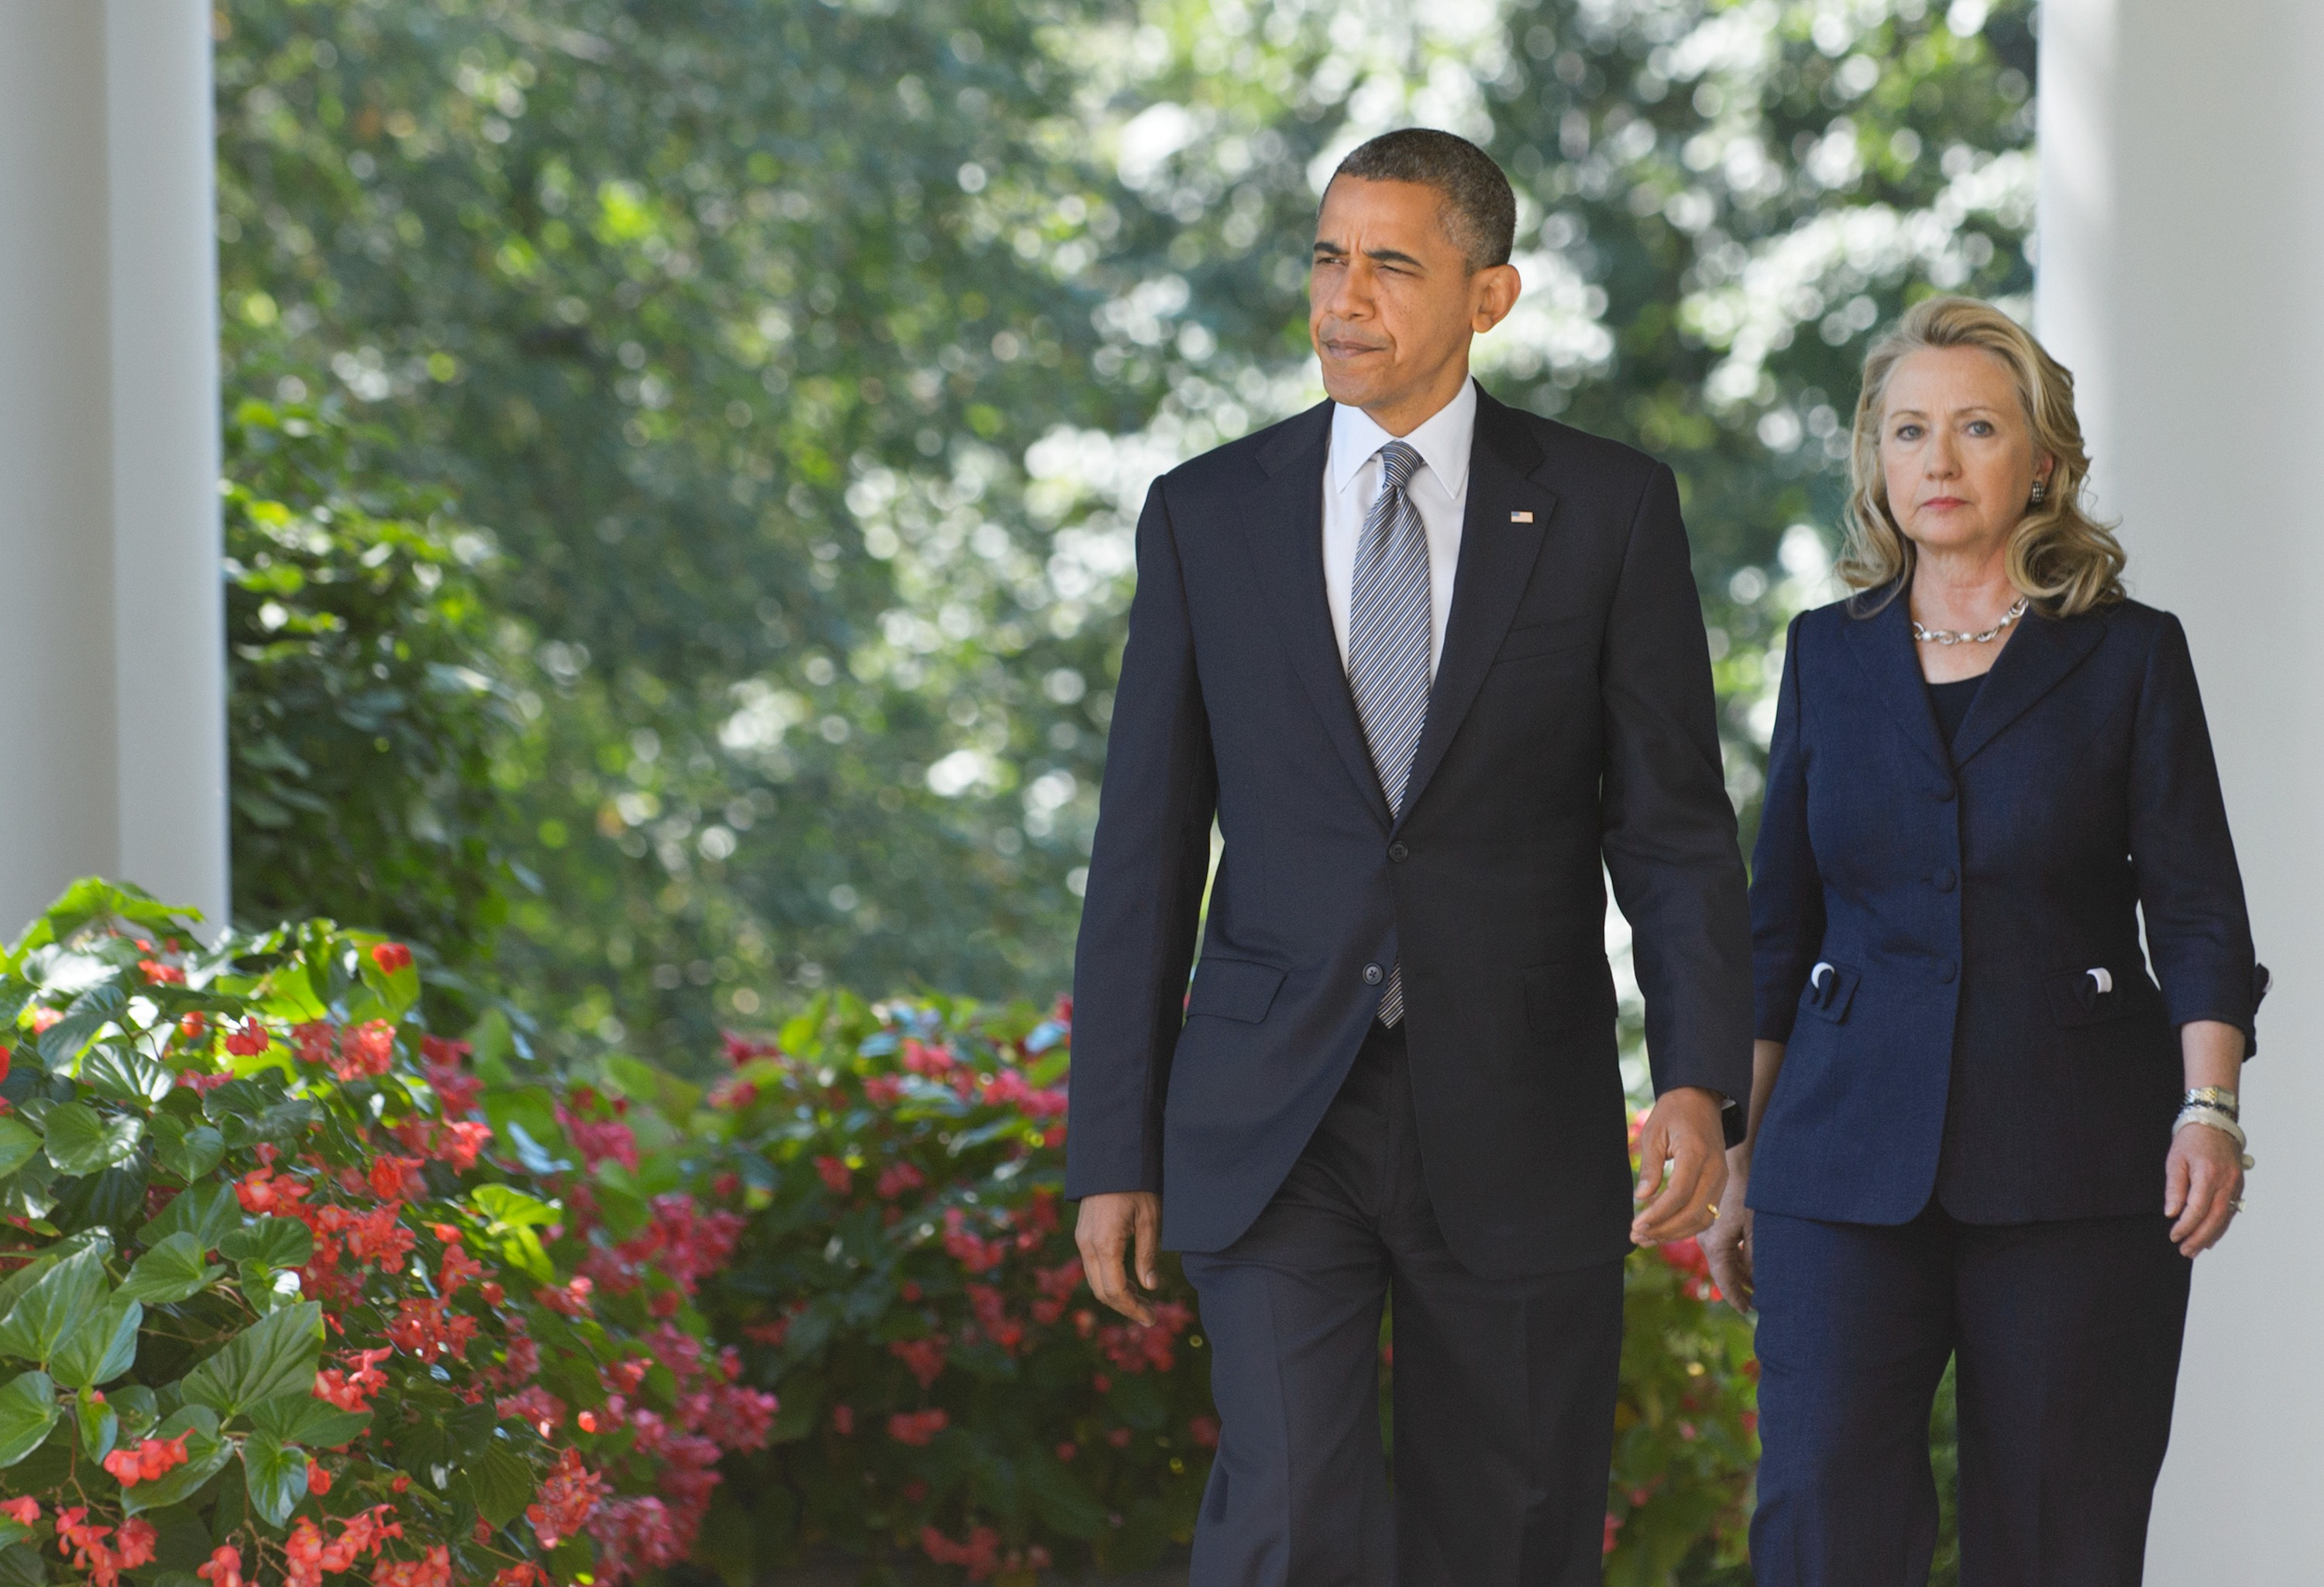 Image result for Secretary of State Hillary Clinton walks with President Barack Obama on Sept. 12, 2012